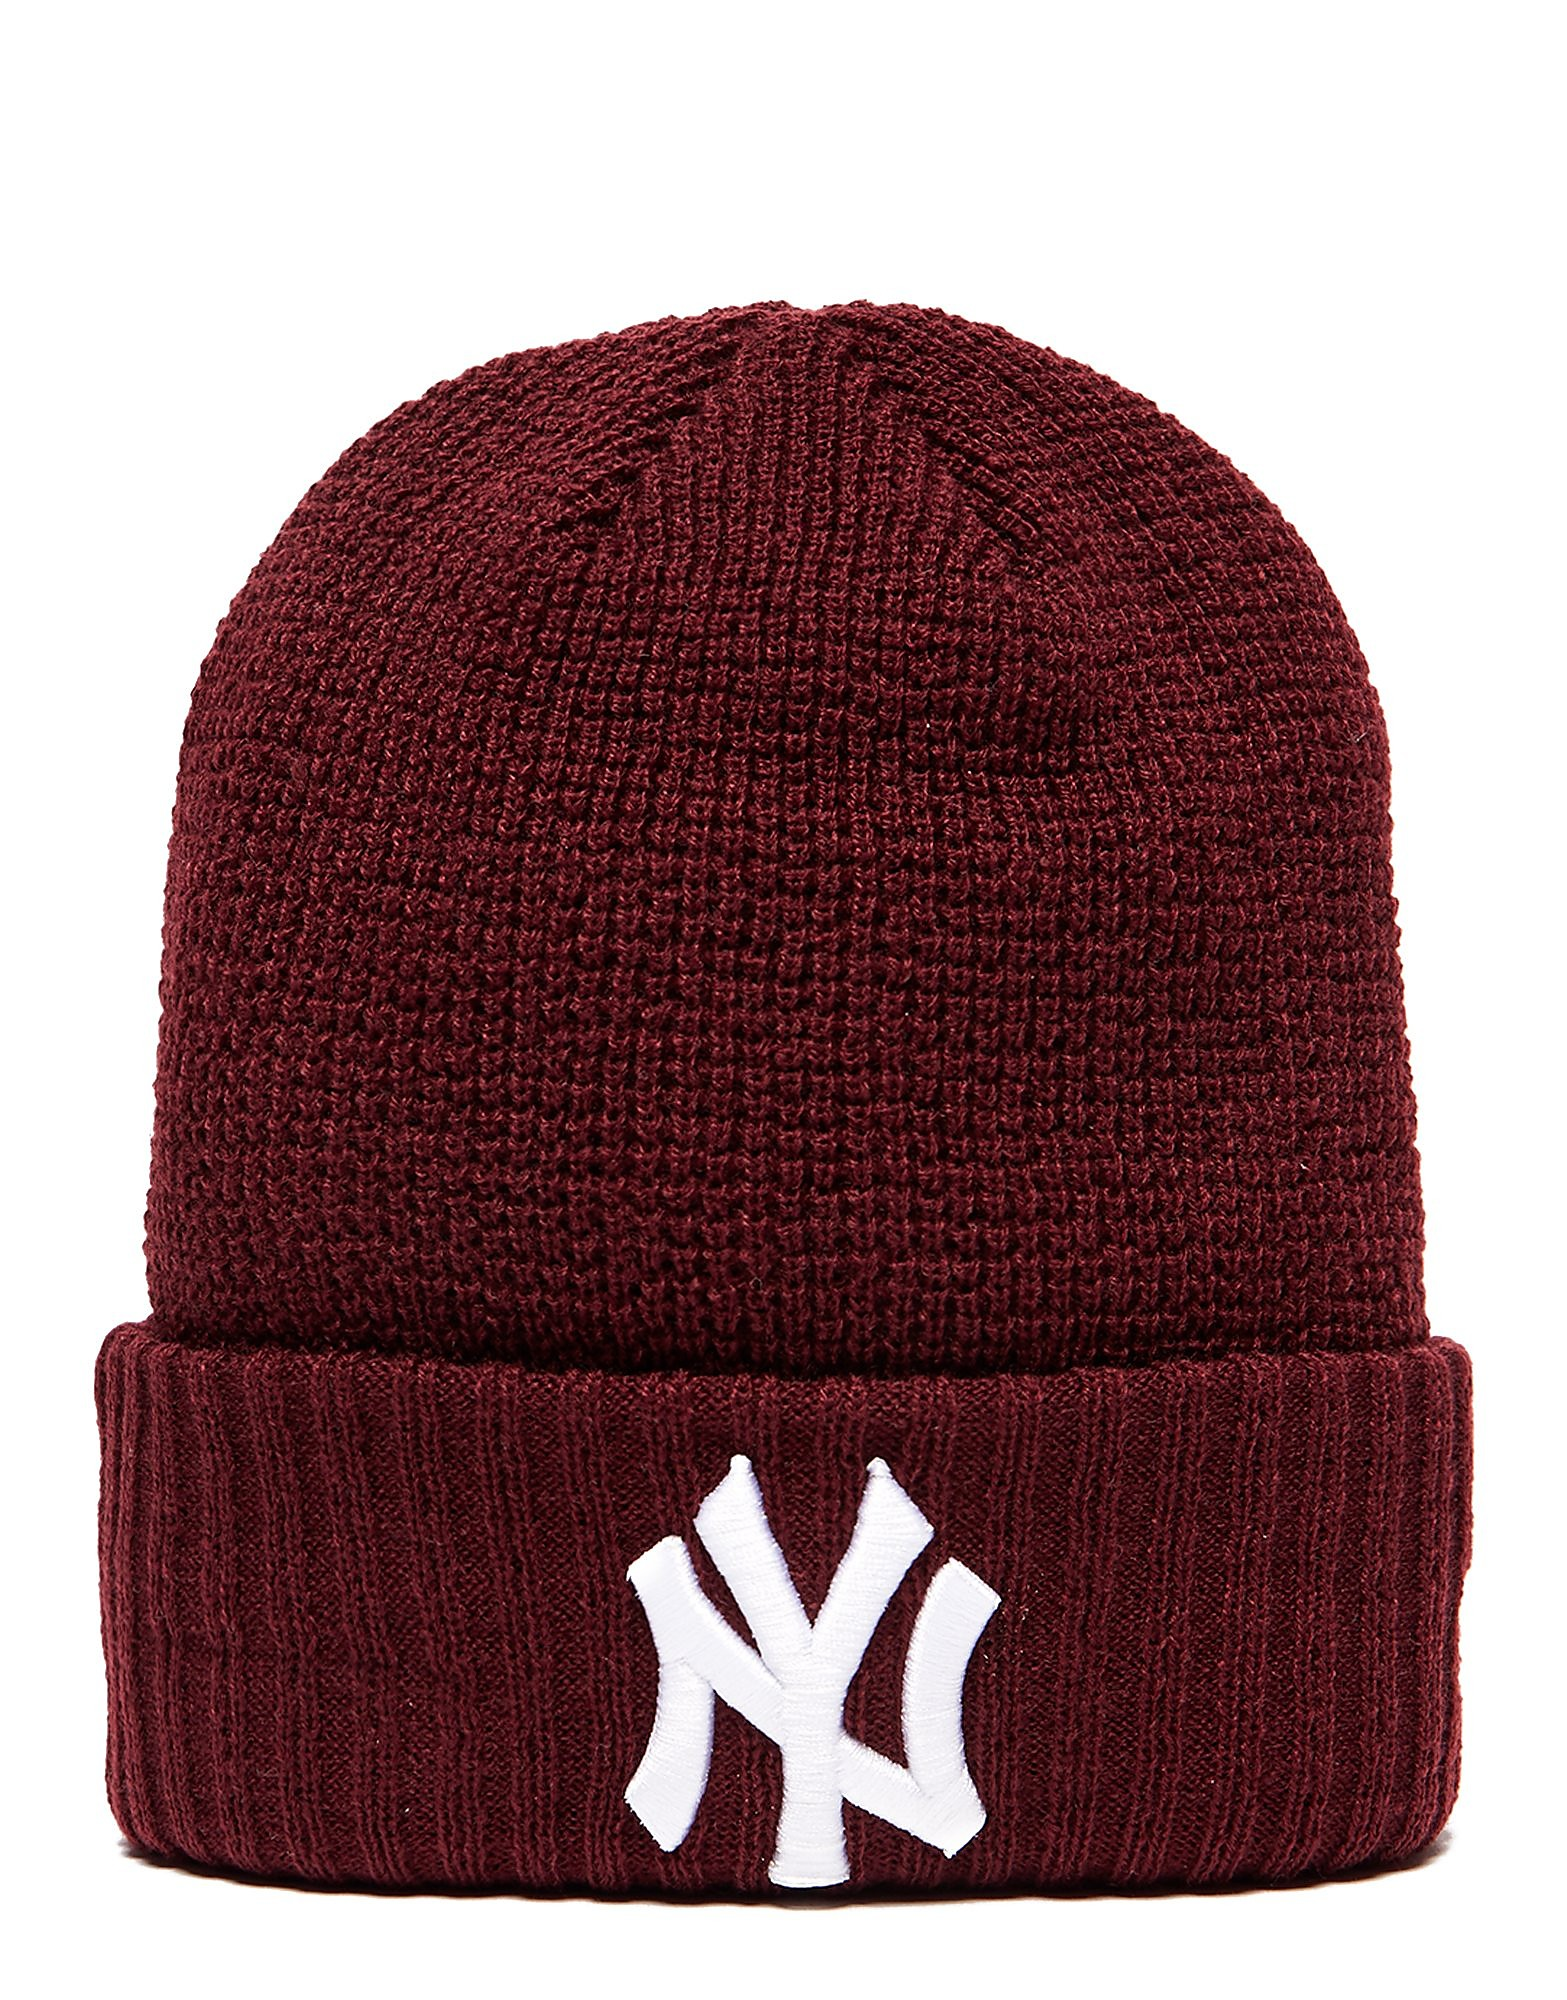 New Era MLB New York Yankees Knit Beanie